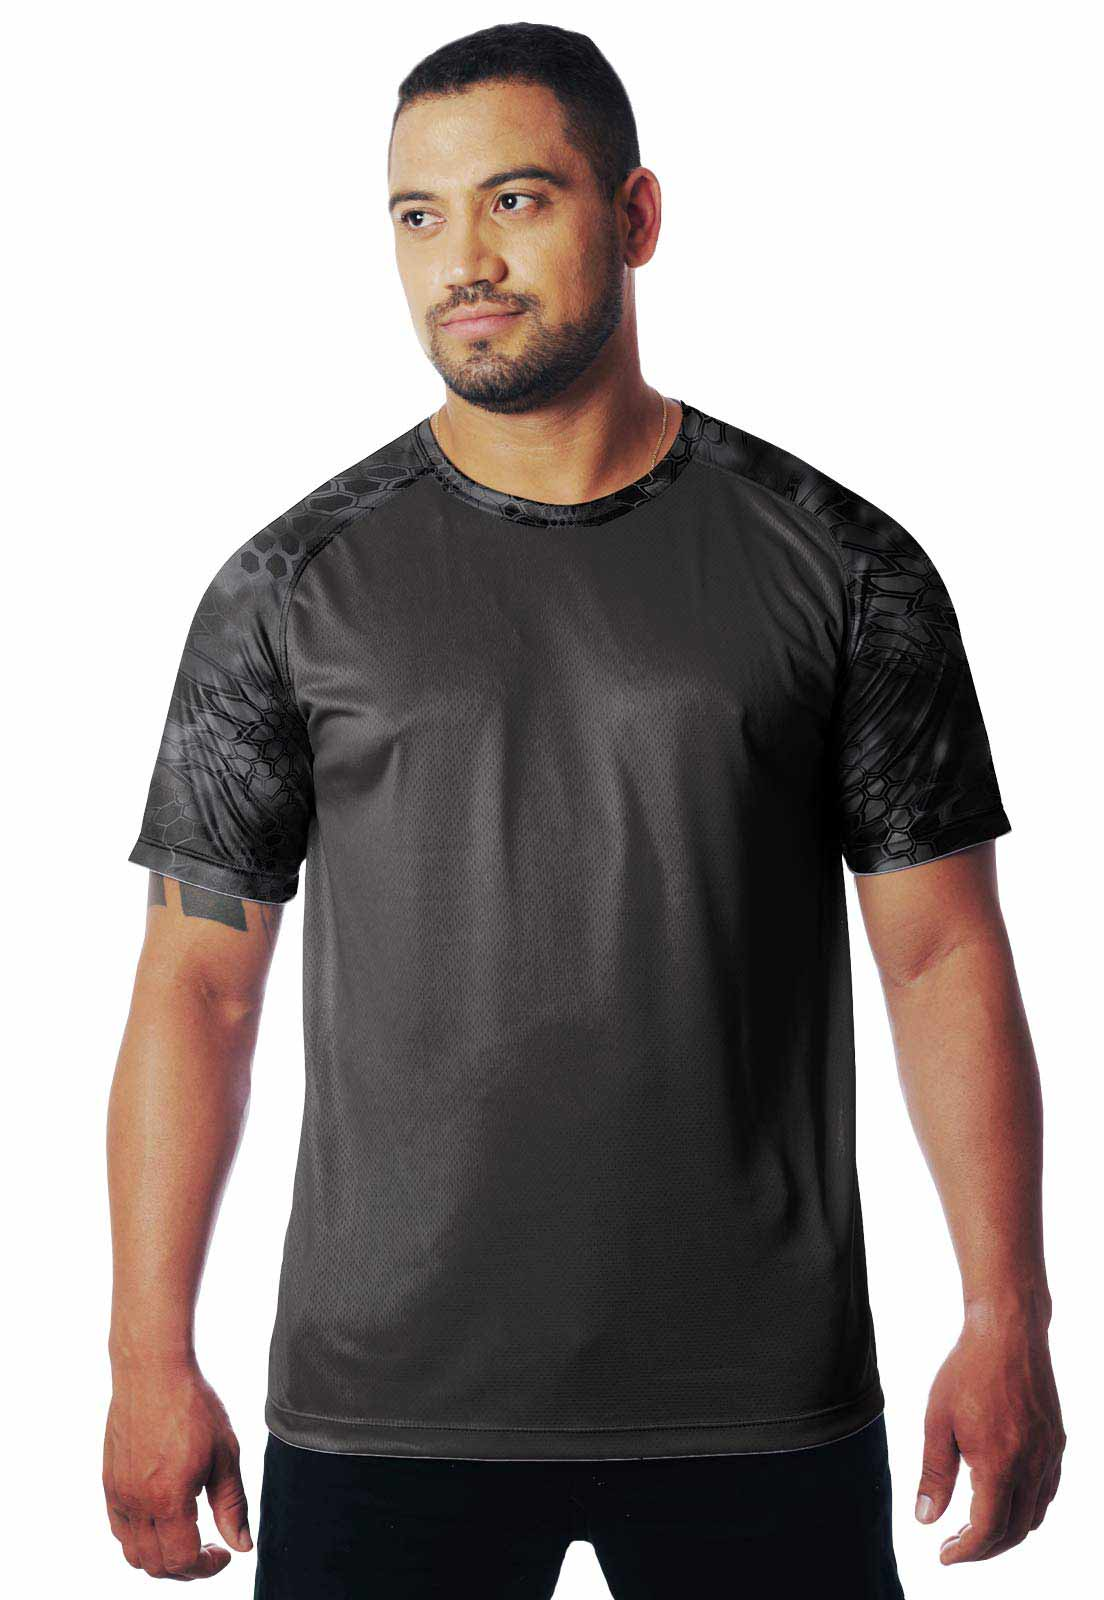 CAMISETA CAMUFLADA KRYPTEC 01 MANGA CURTA MASCULINA  - REAL HUNTER OUTDOORS